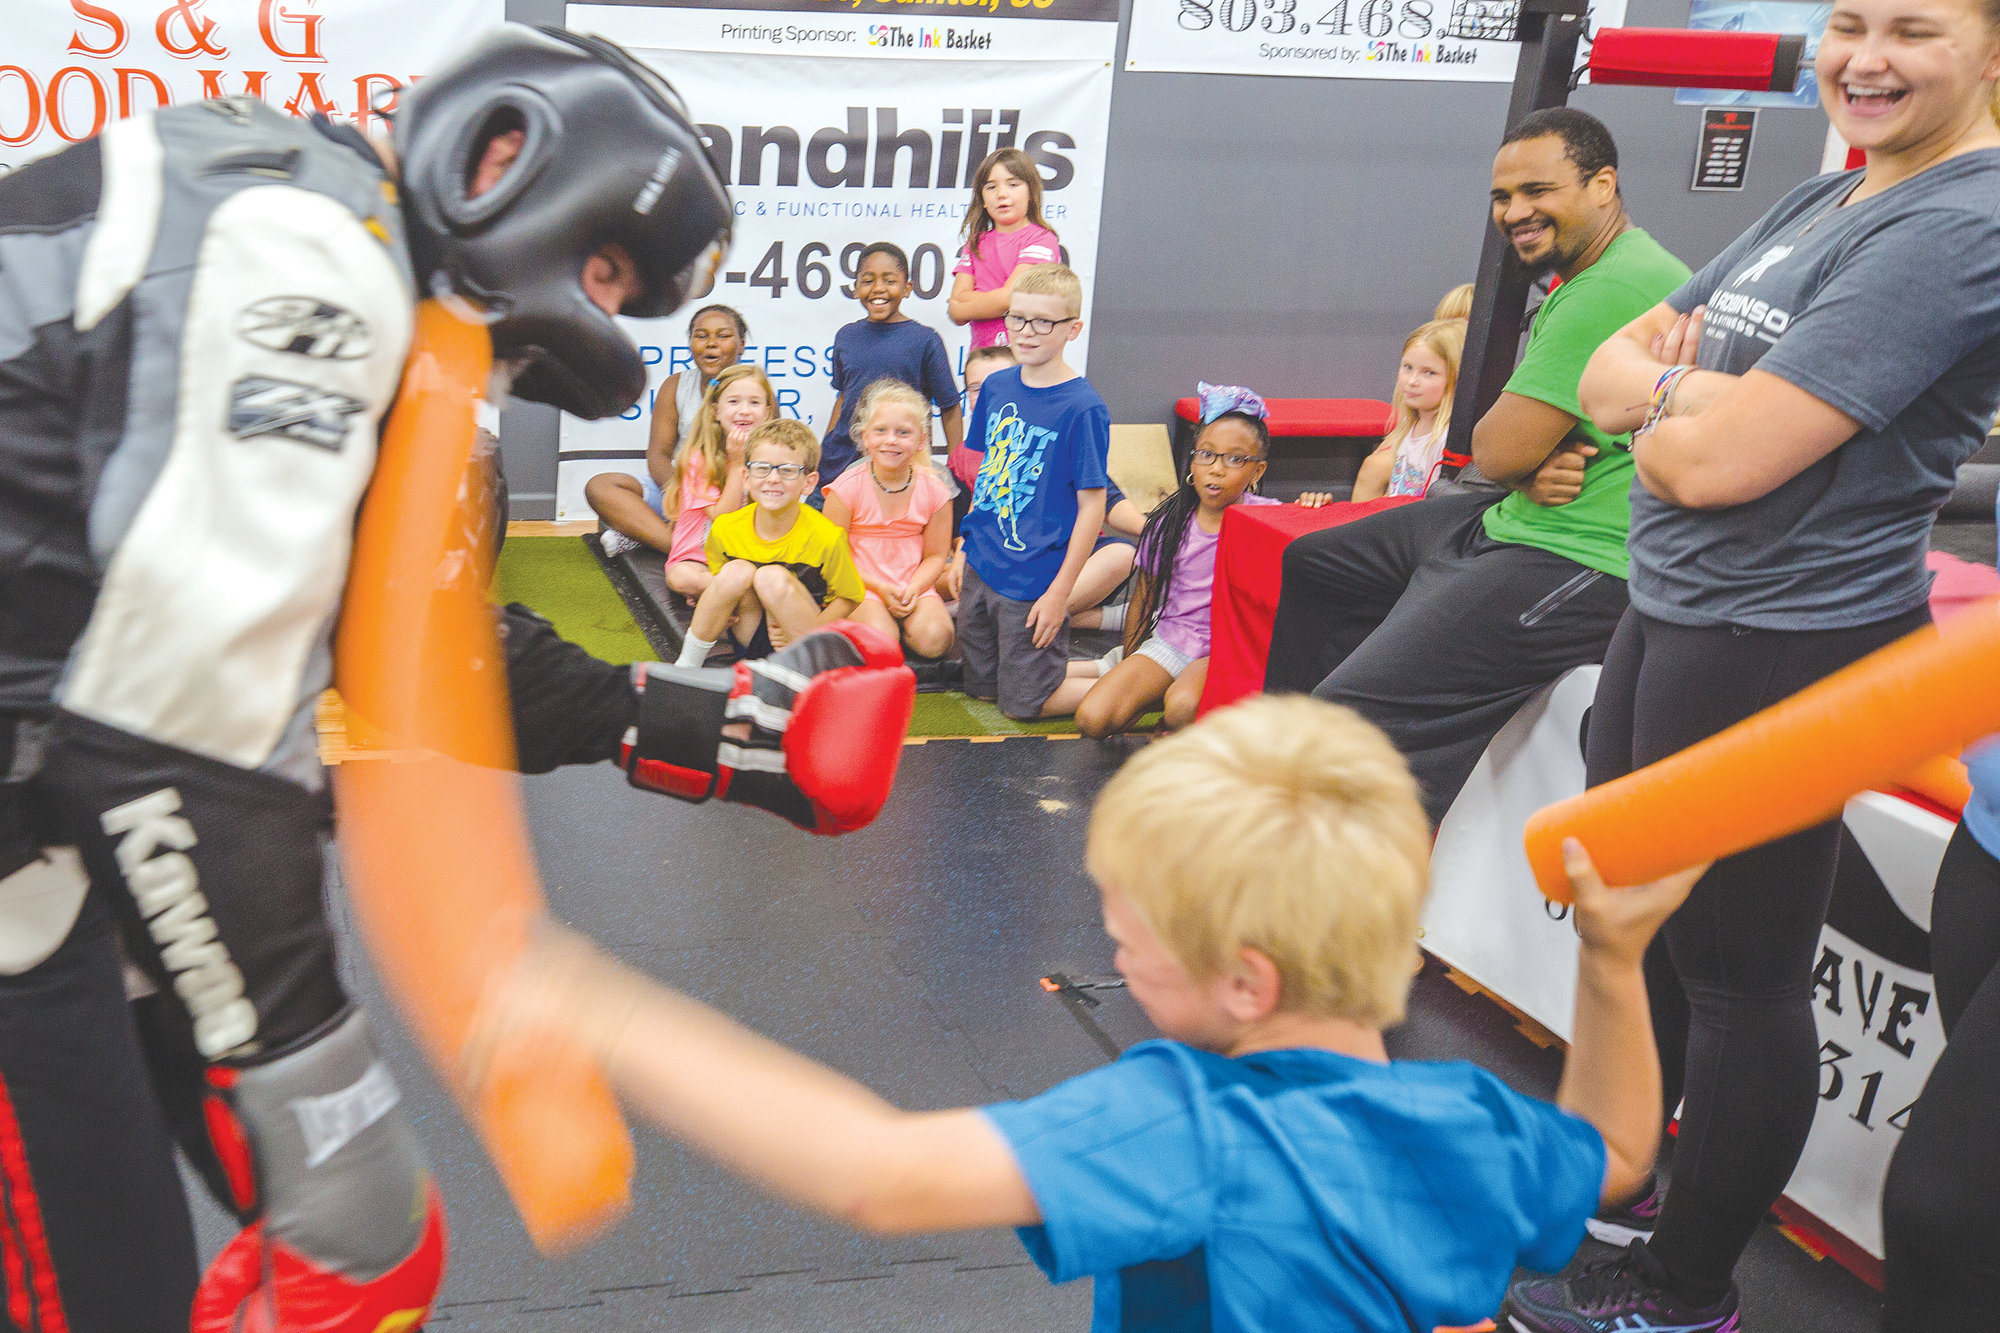 Students from Clubhouse Learning Center cheer on a classmate on Monday morning during their session at Team Robinson MMA in Sumter. The group makes a trip to the gym every Monday during the summer, where Jerome and his team teach them basic self defense skills and work outs.